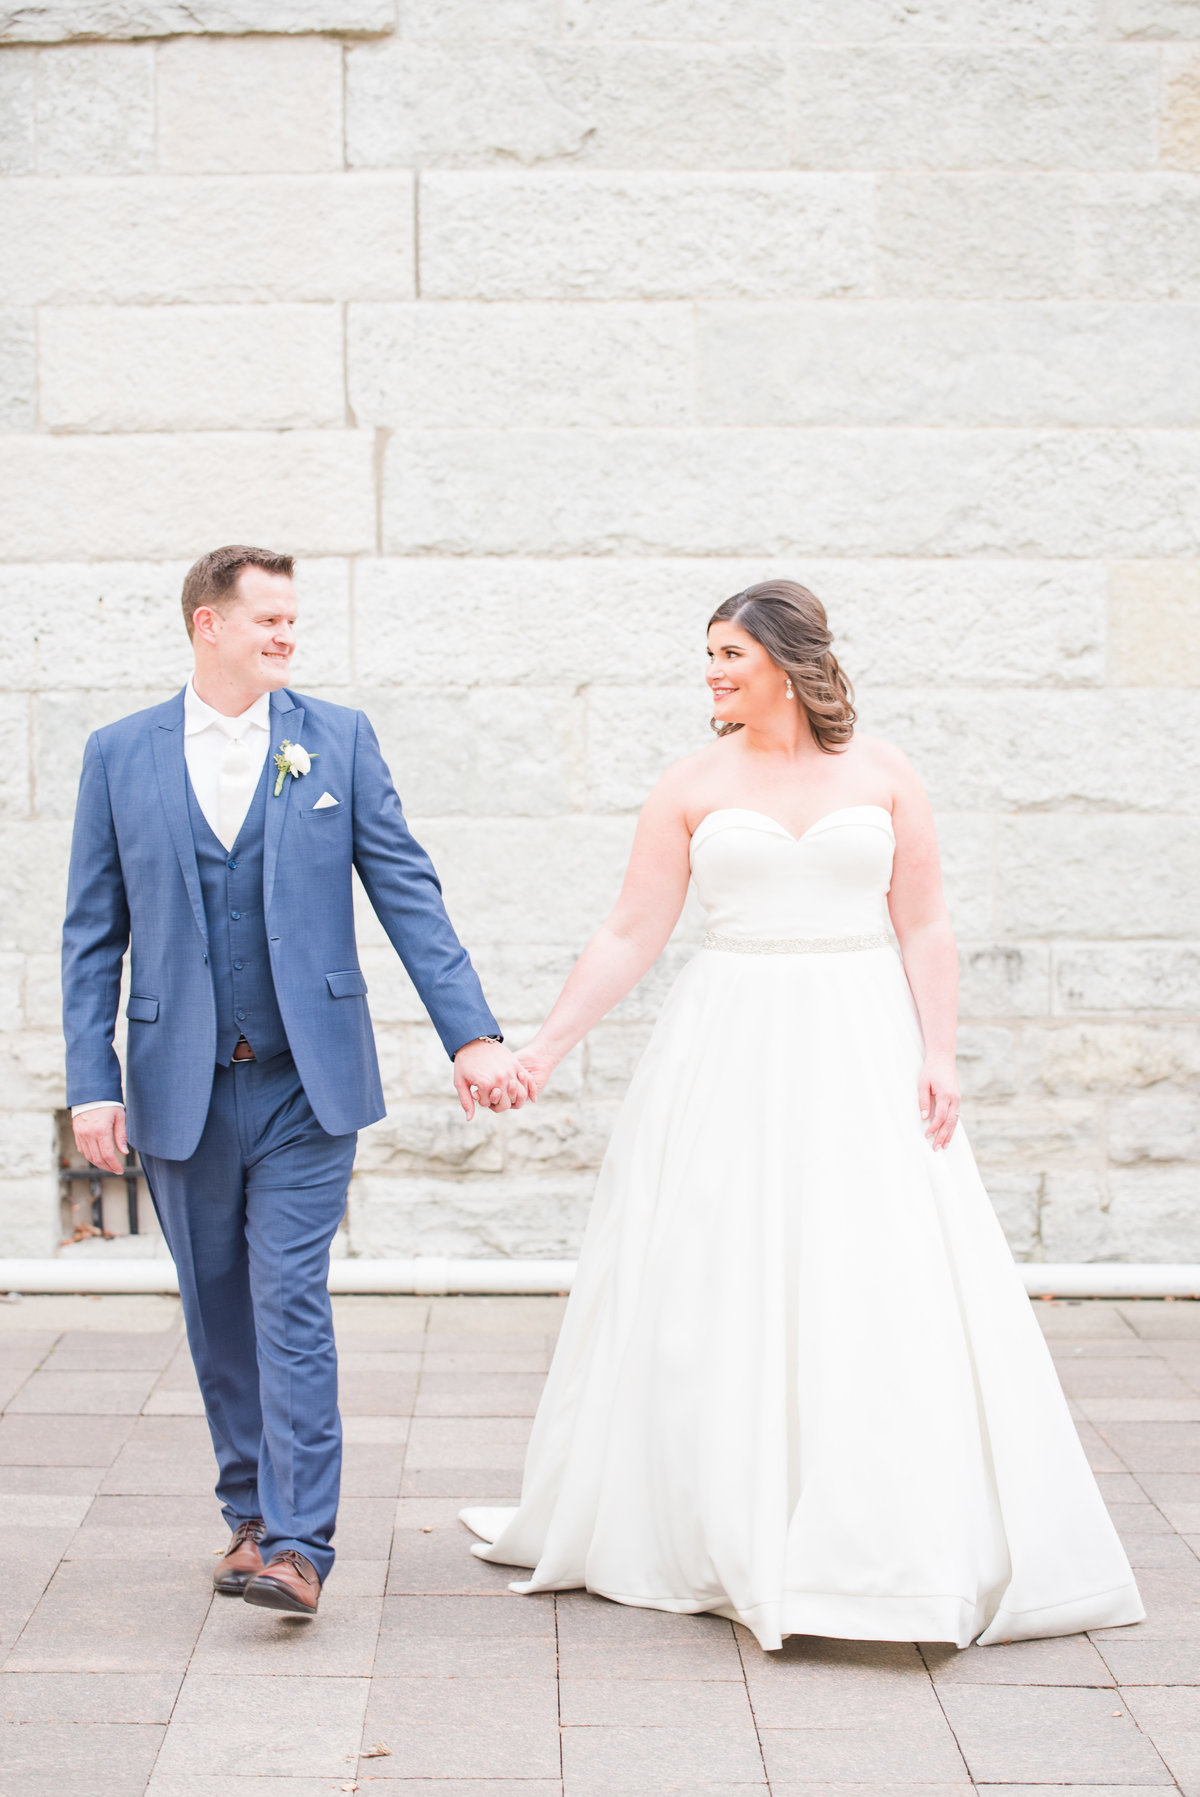 Newlywed Portraits Cait Potter Creative LLC Milltop Potters Bridge Noblesville Square Courthouse Wedding-29